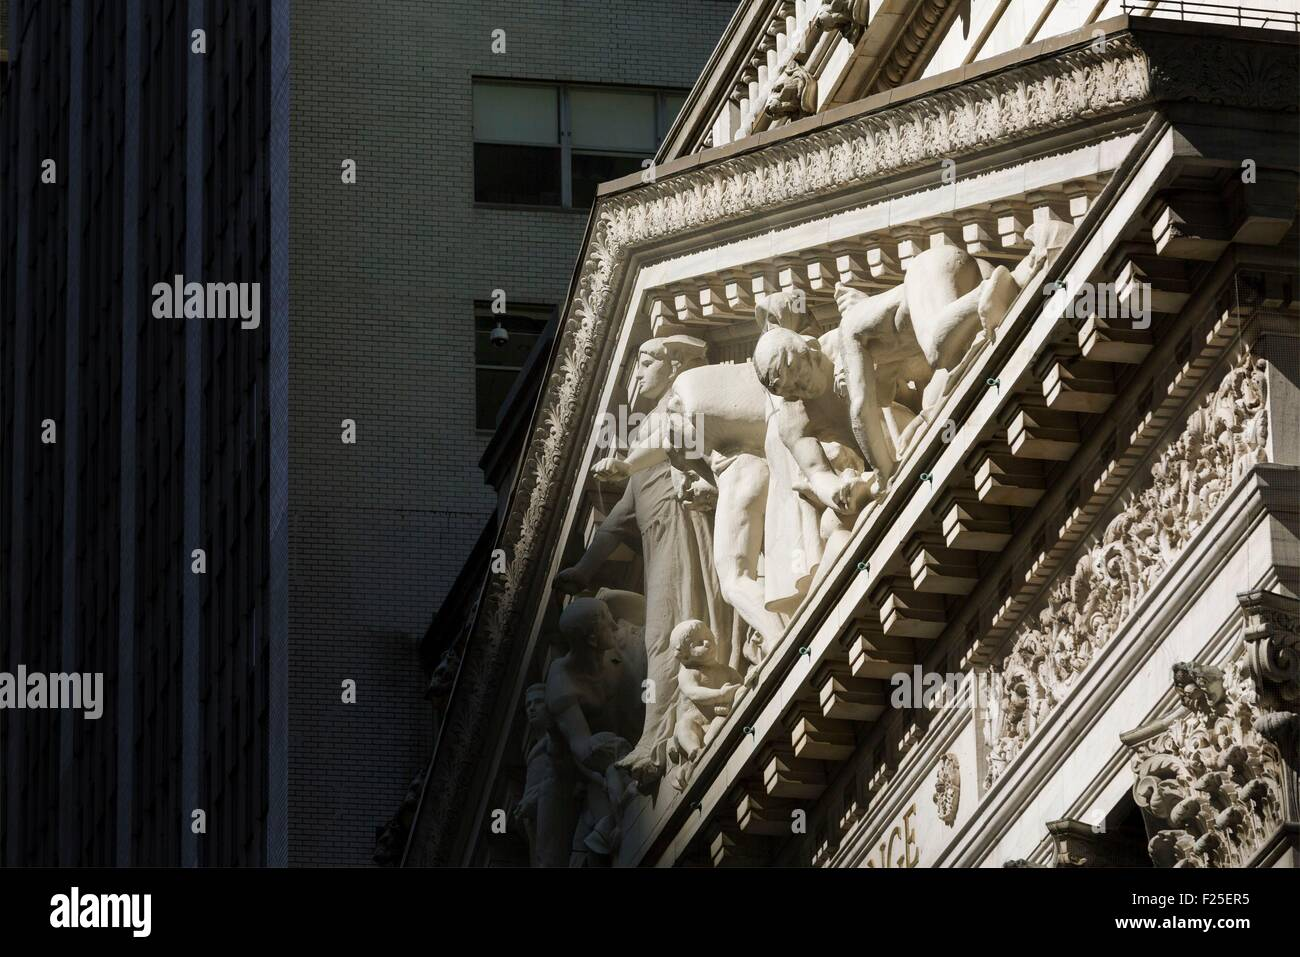 Vereinigte Staaten, New York, Manhattan, Financial District, Wall Street, der Giebel des Aktienmarktes Stockbild